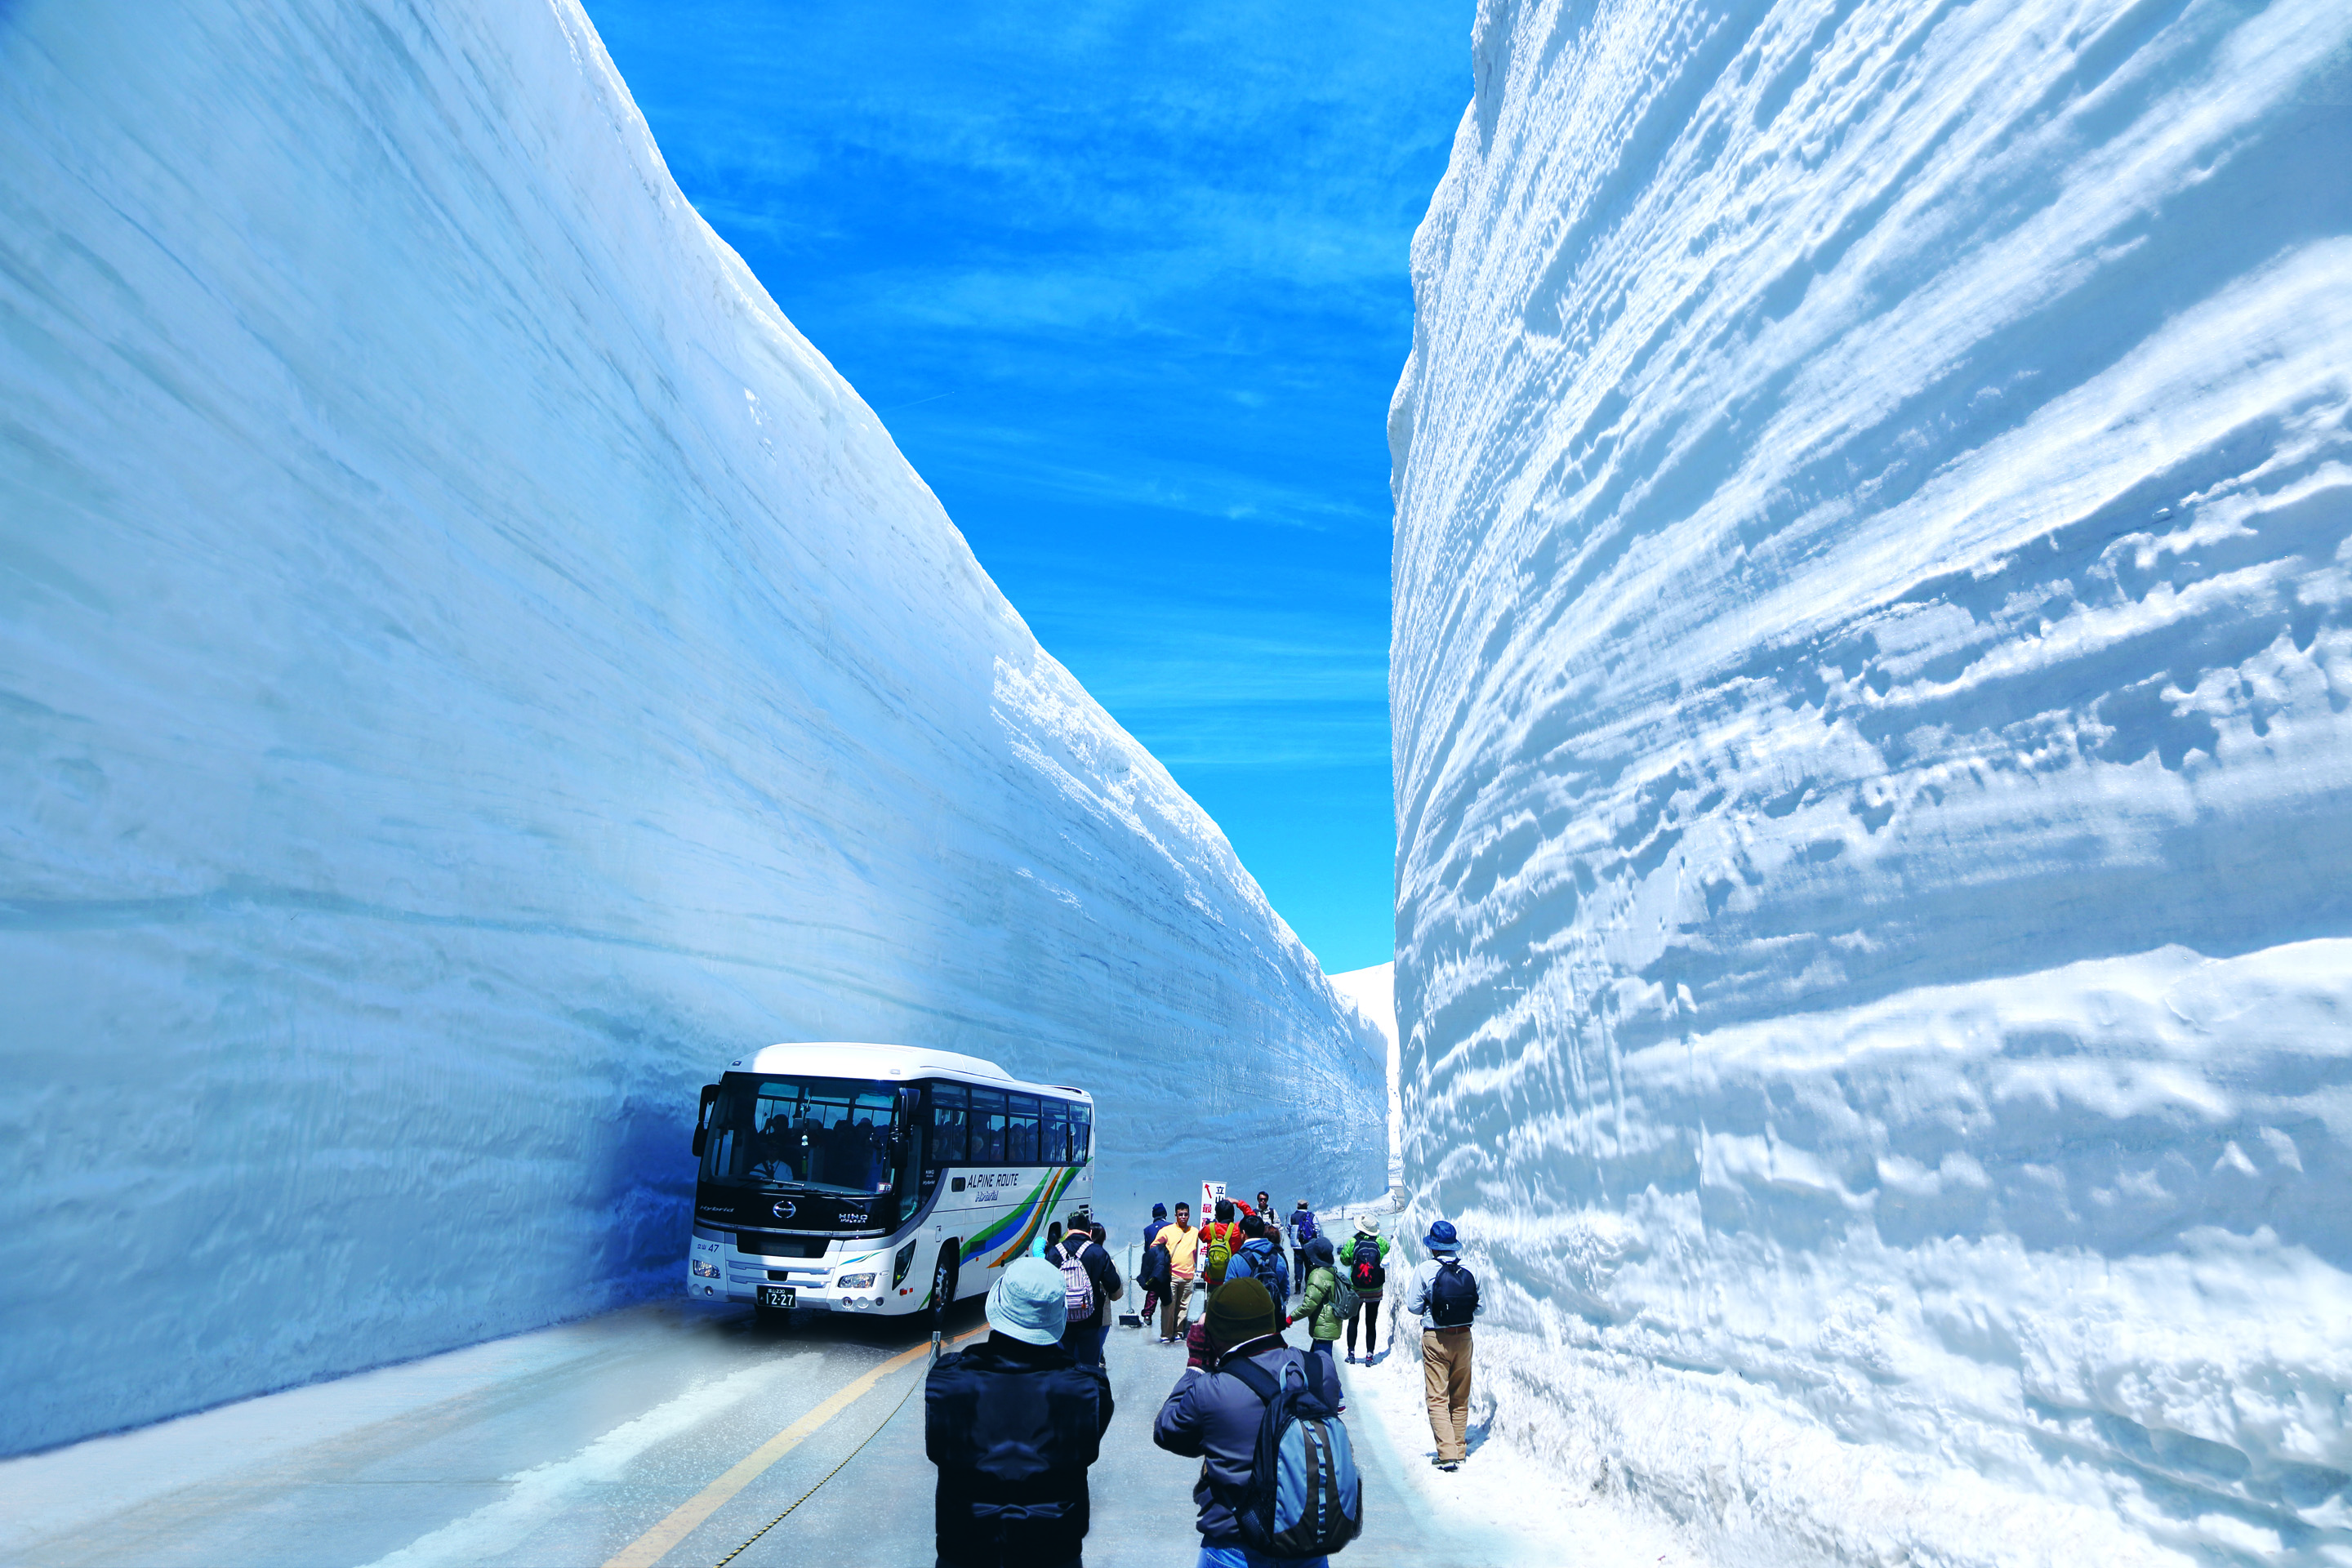 66 feet of snow on the tateyama kurobe alpine route official tourism guide for japan